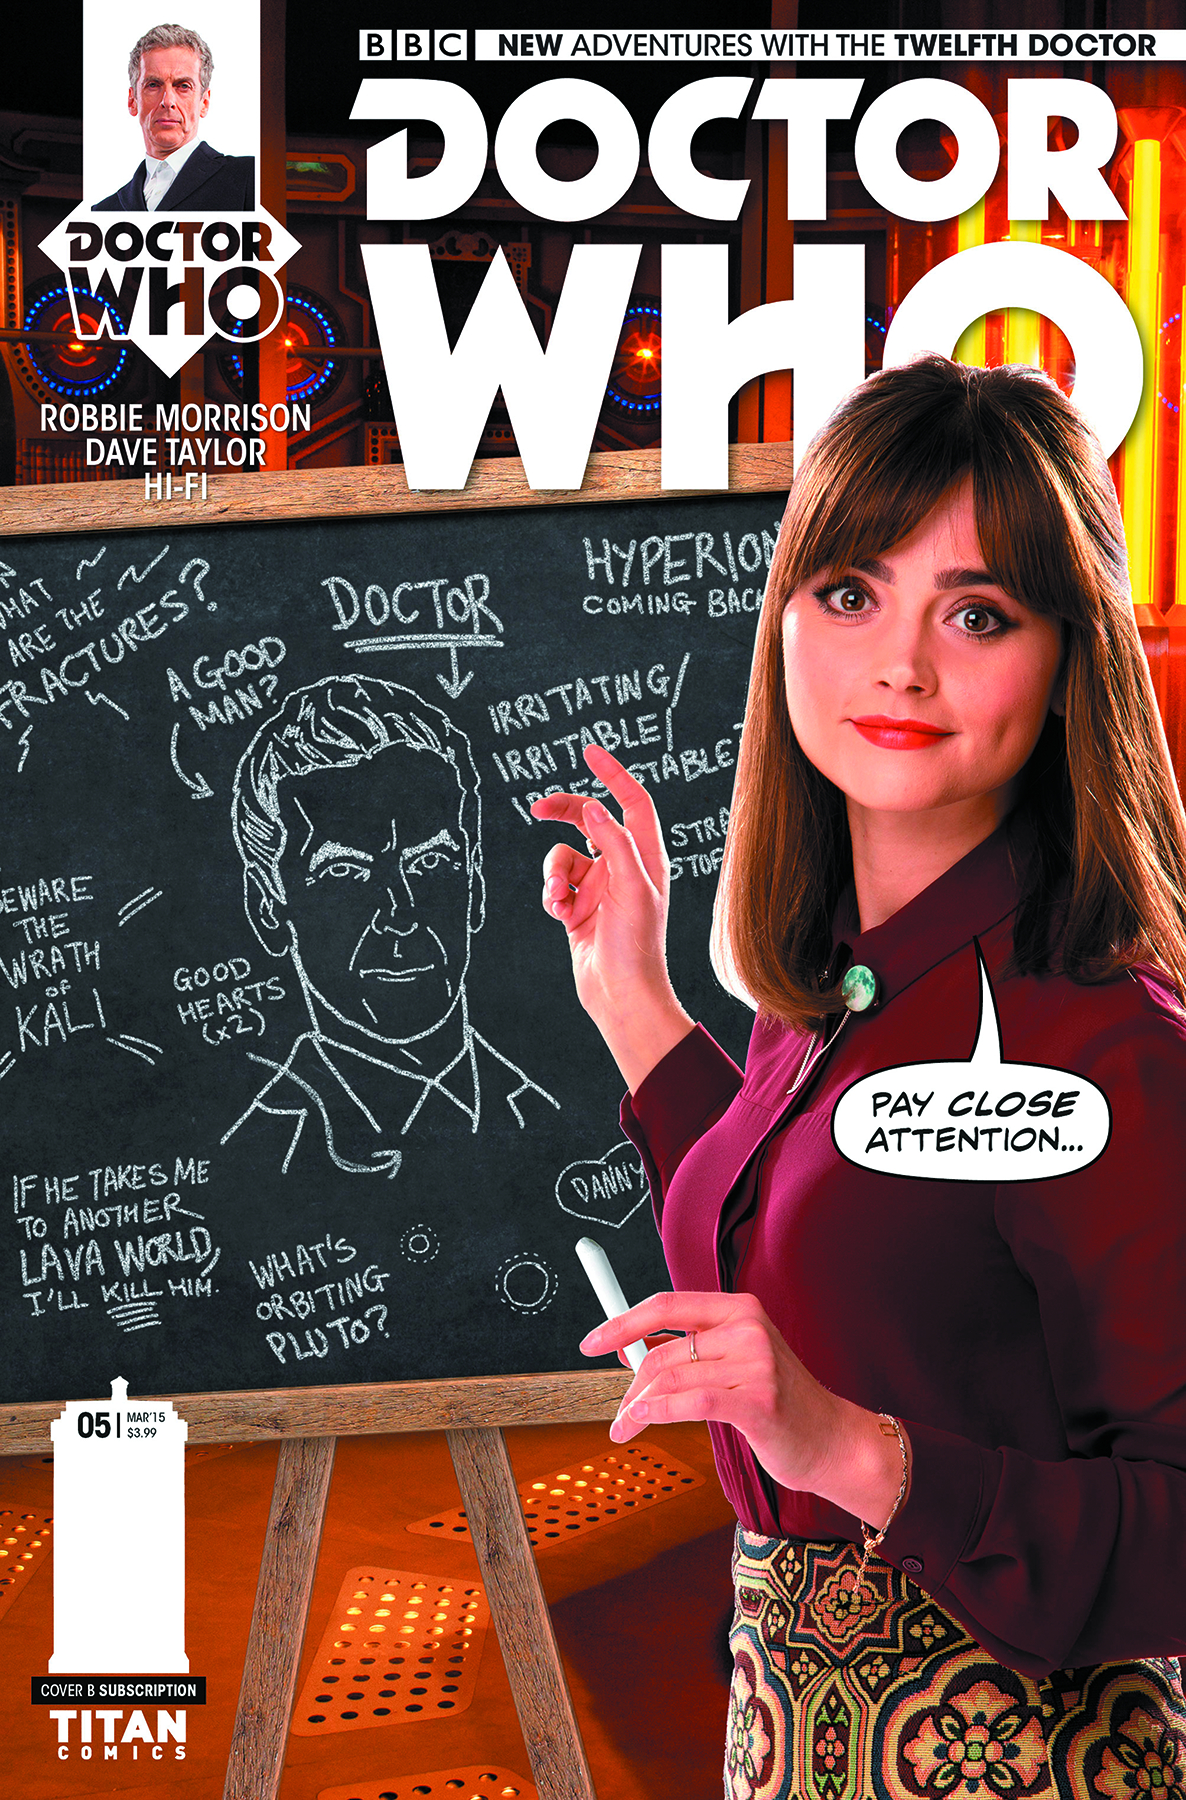 DOCTOR WHO 12TH #5 SUBSCRIPTION PHOTO